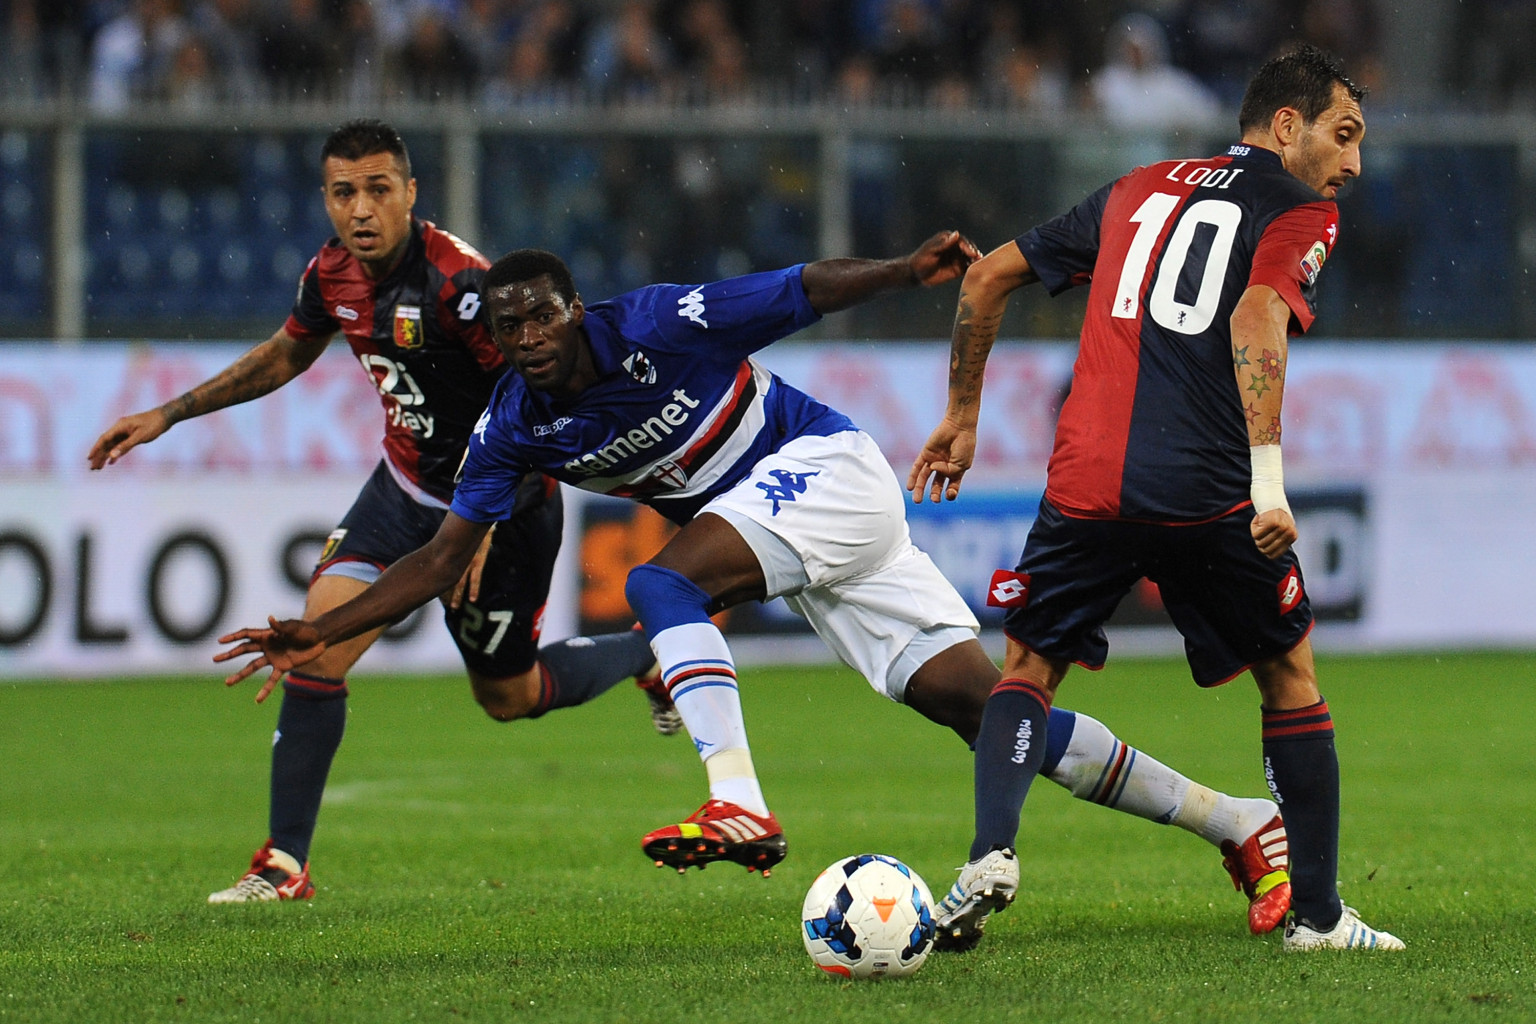 sampdoria vs crotone